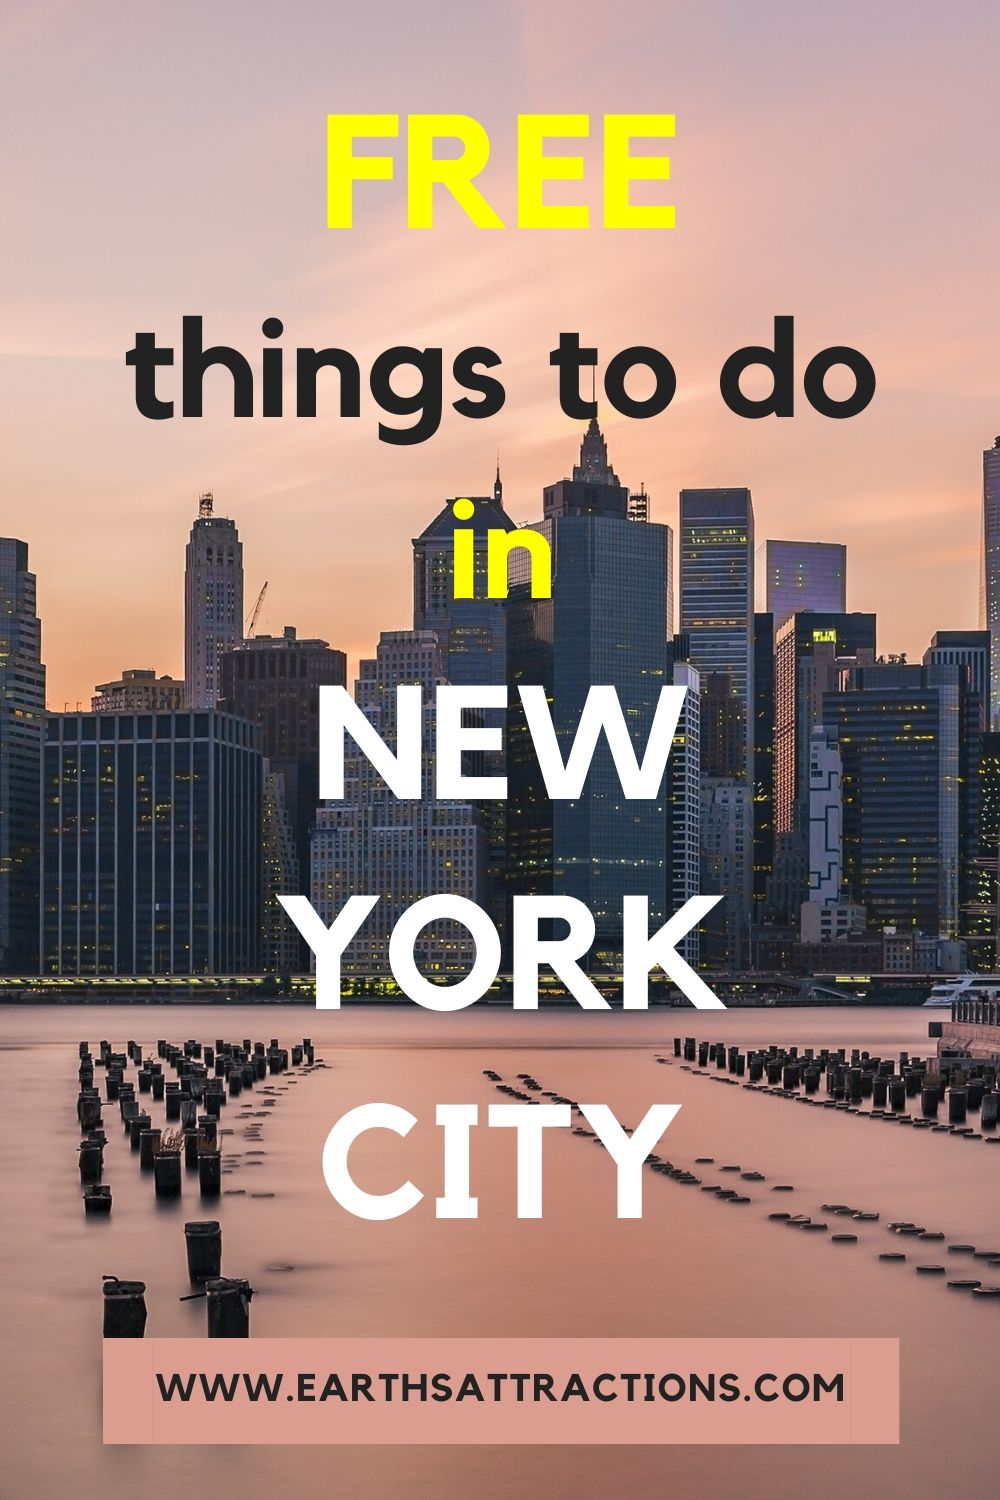 20 Amazing Free things to do in New York City. Discover the best things to do in NYC for free. Plenty of cool NYC attractions can be admired for free. Read the article now. #nyc #freeentry #usa #usatravel #nycthingstodo